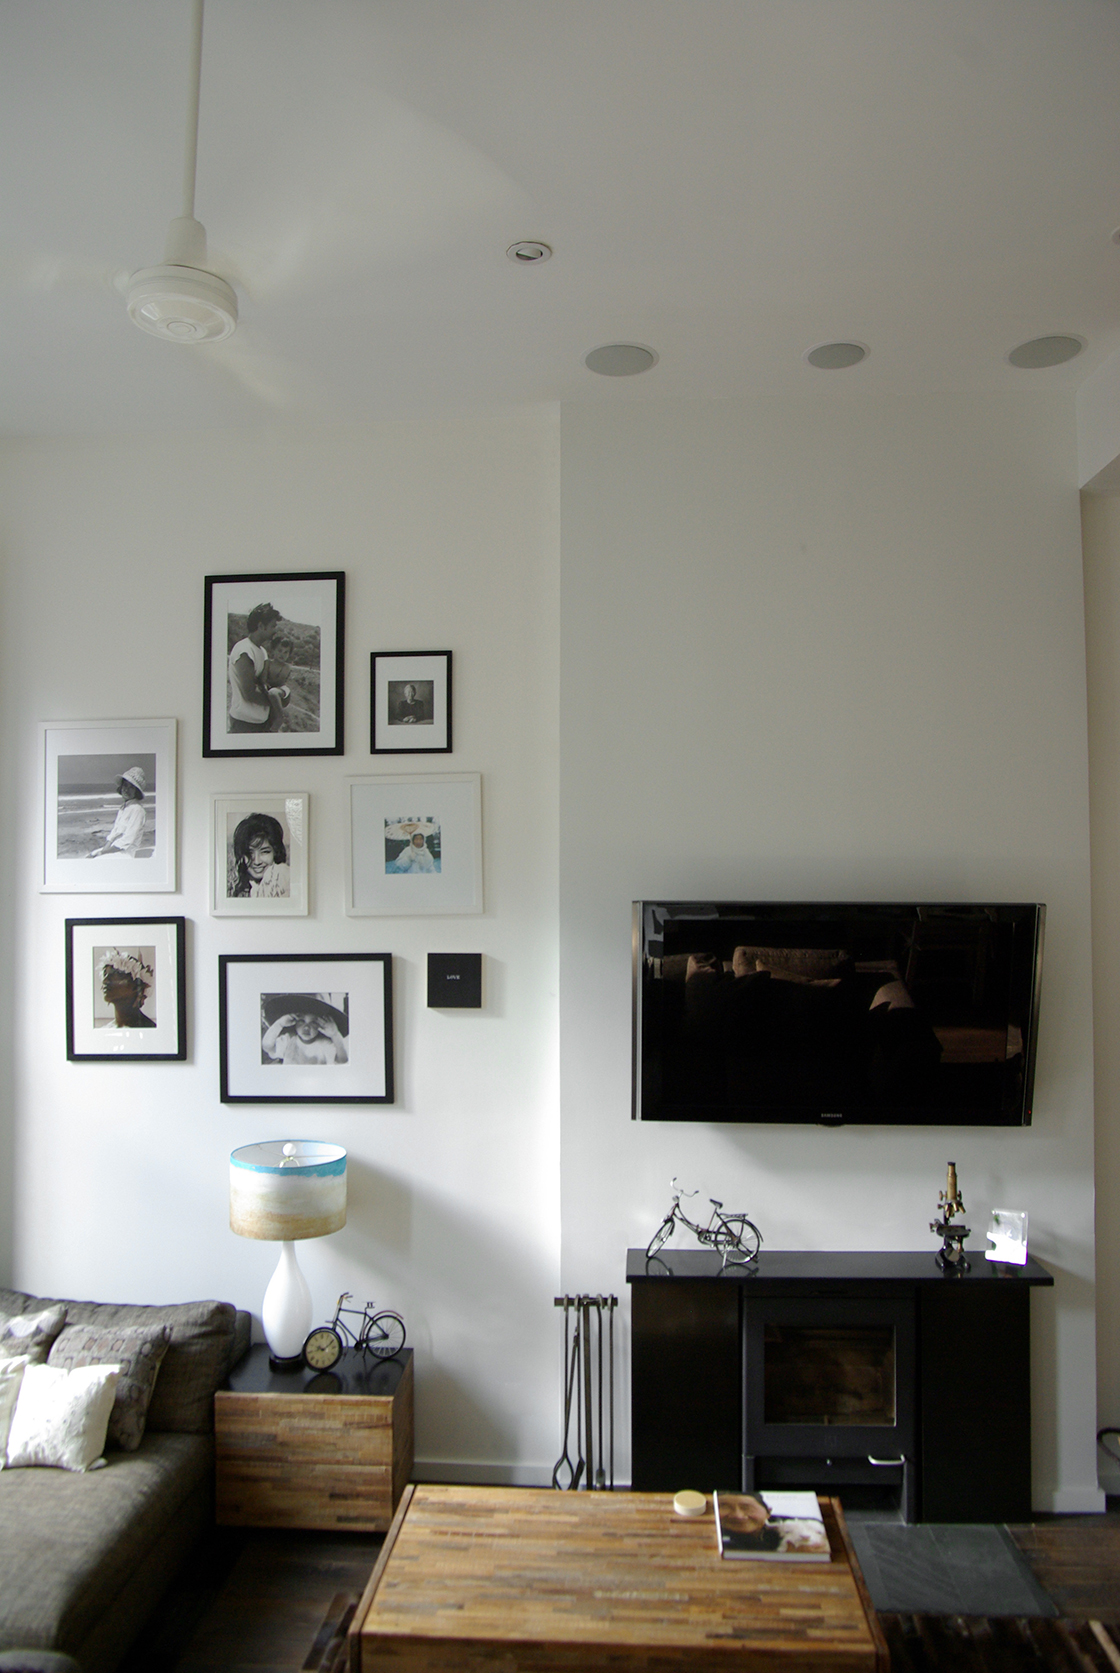 InsideWright_Chelsea_3_Living_Room.jpg